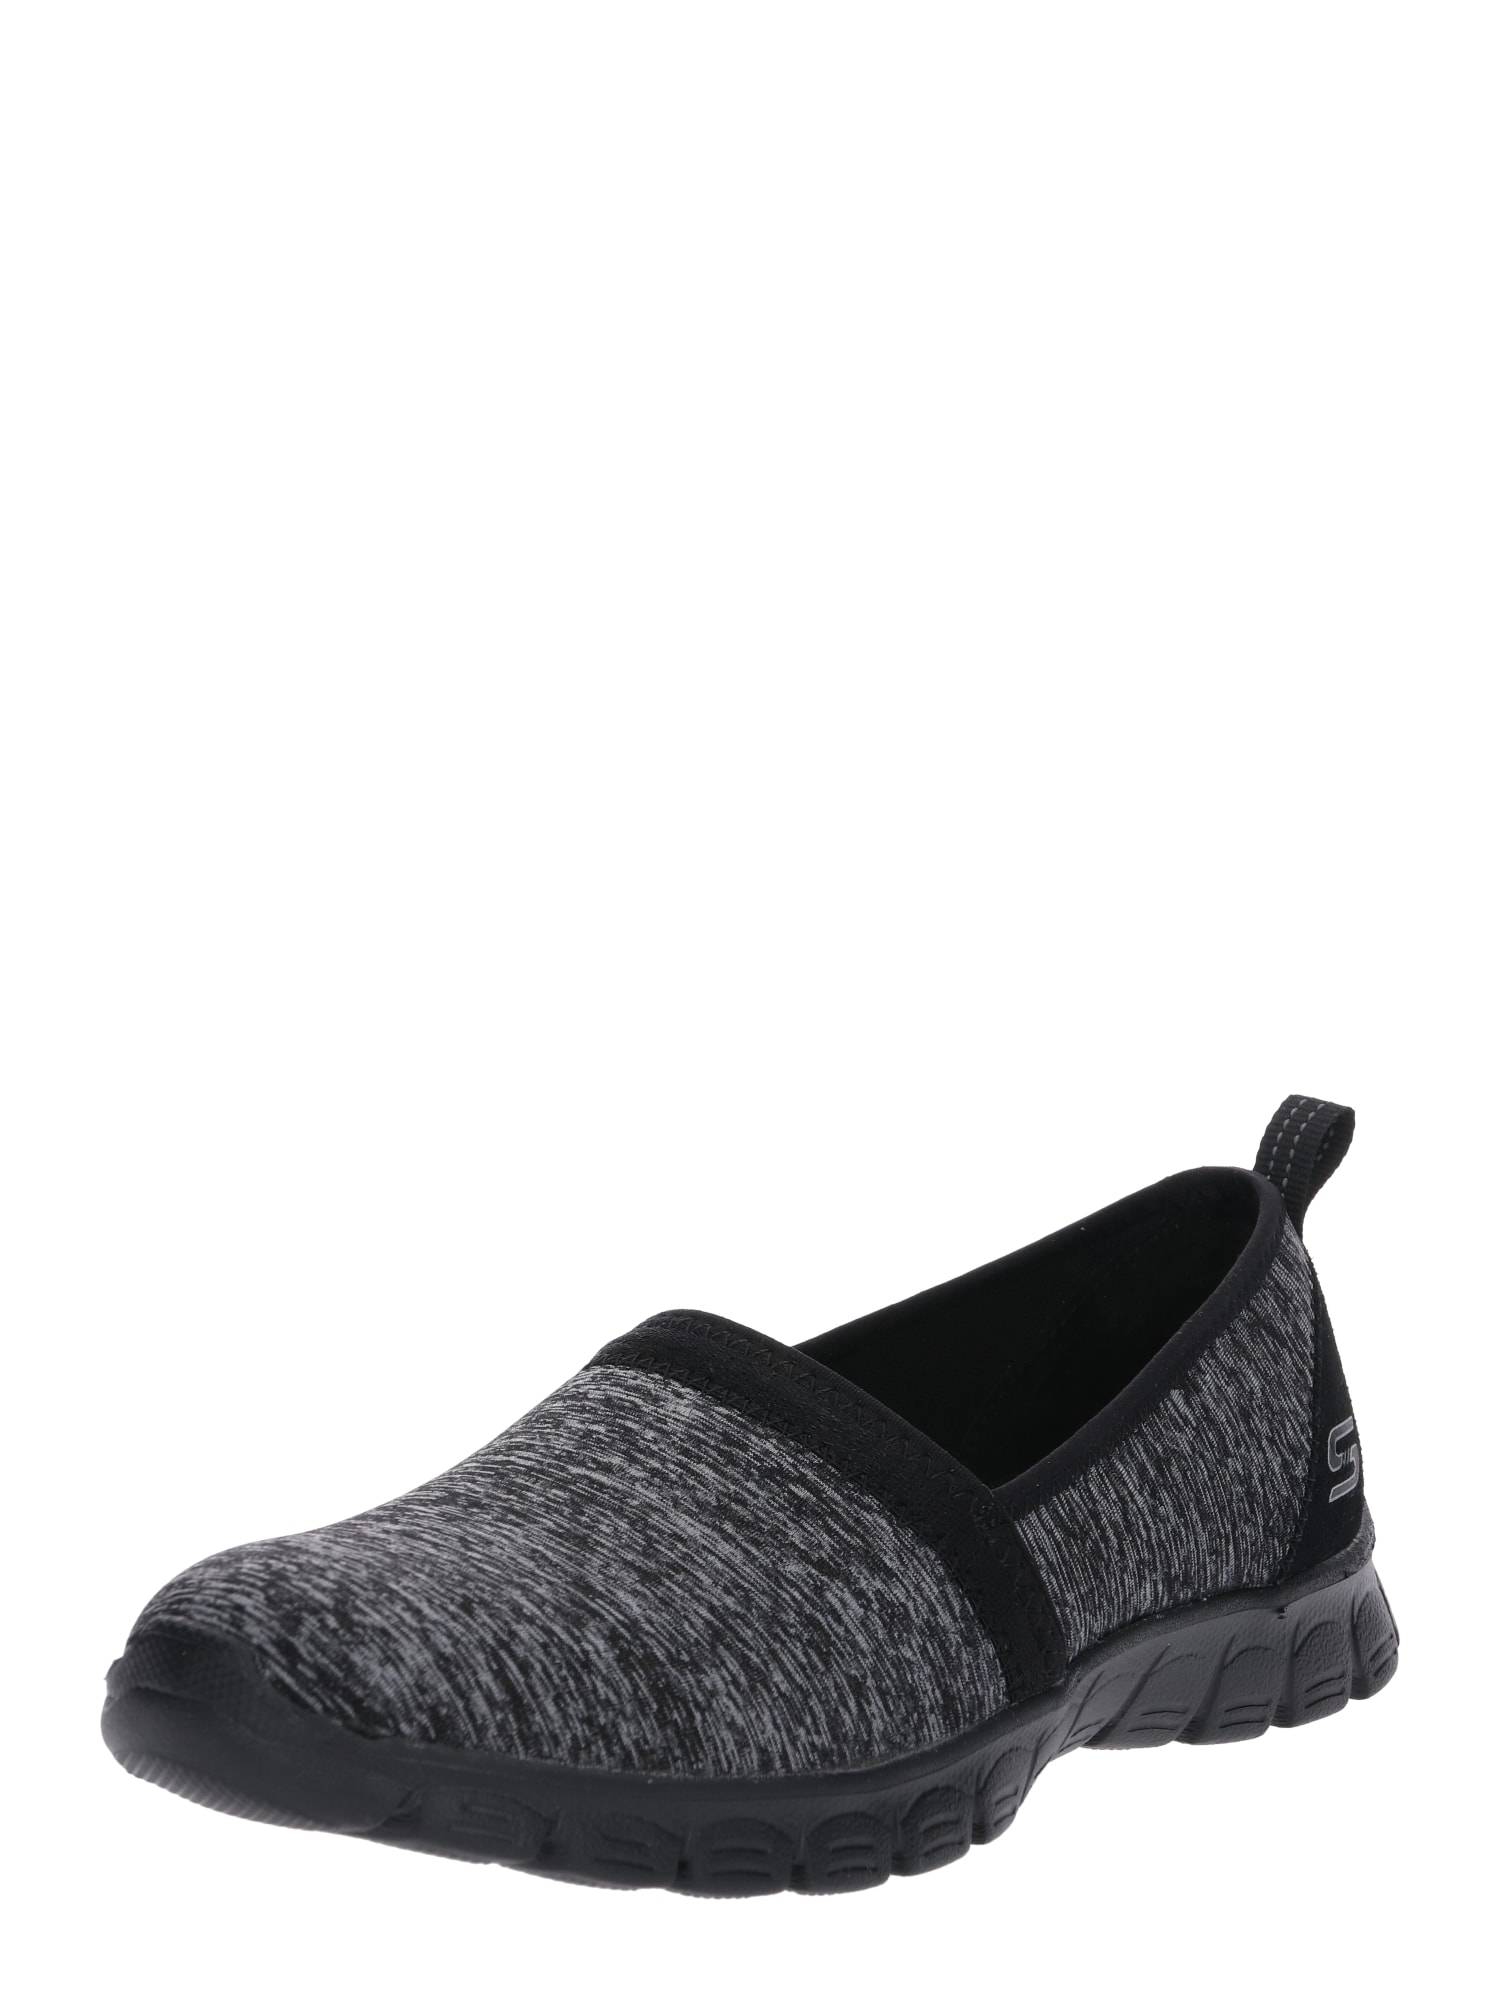 Slip on boty FLEX 3.0 SWIFT MOTION šedá SKECHERS